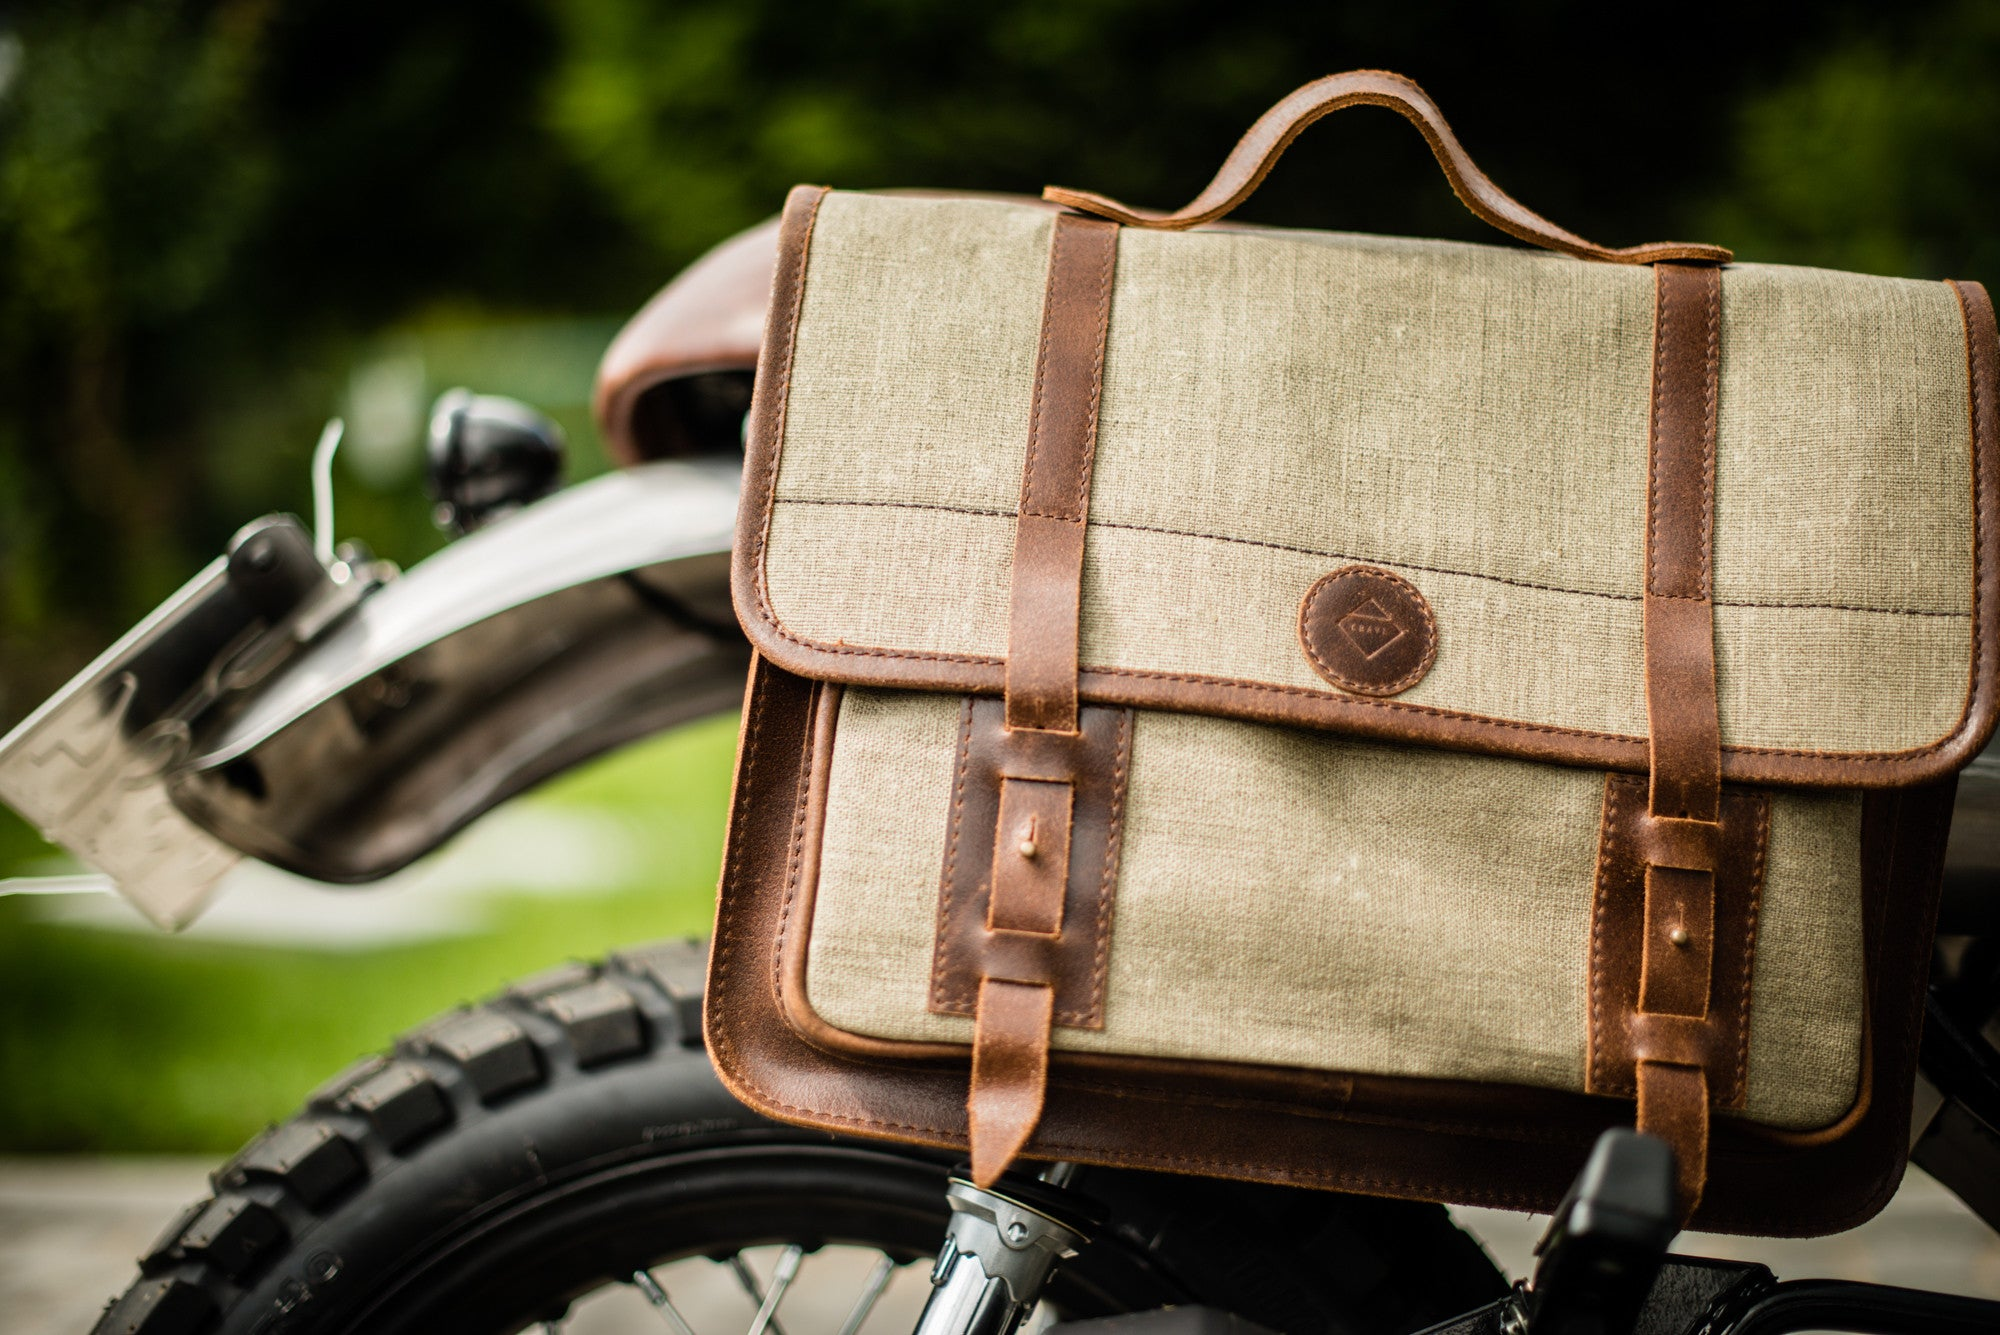 Leon Moto Bag - big motorcycle pannier bag / shoulder bag